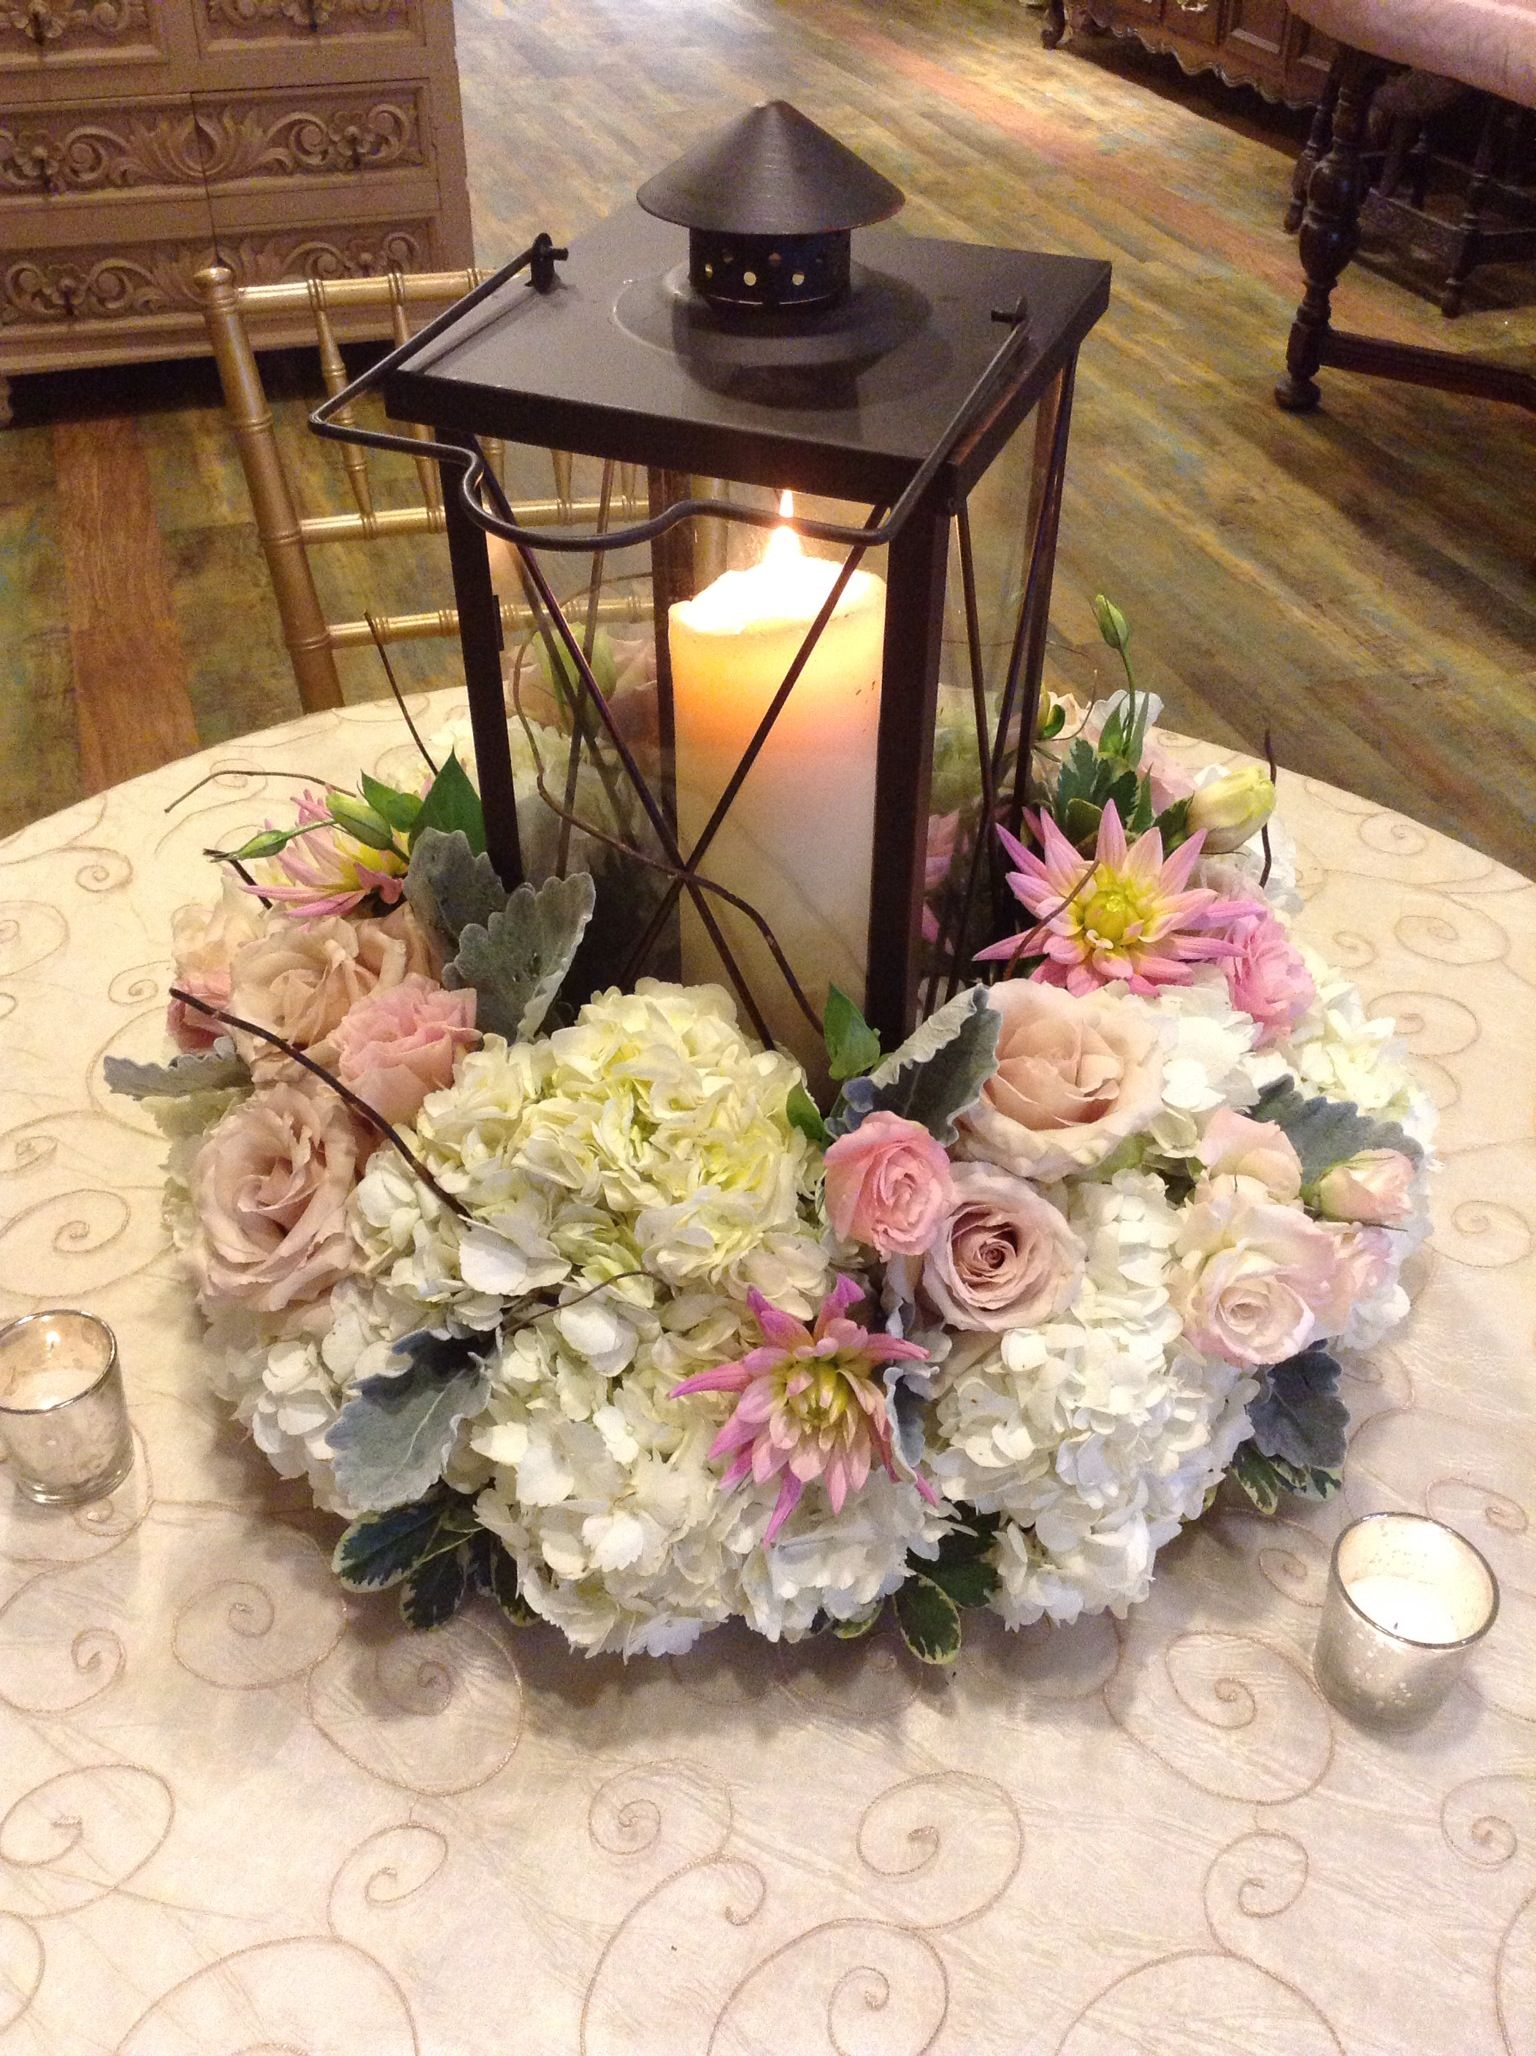 A beautiful lantern centerpiece surrounded by white